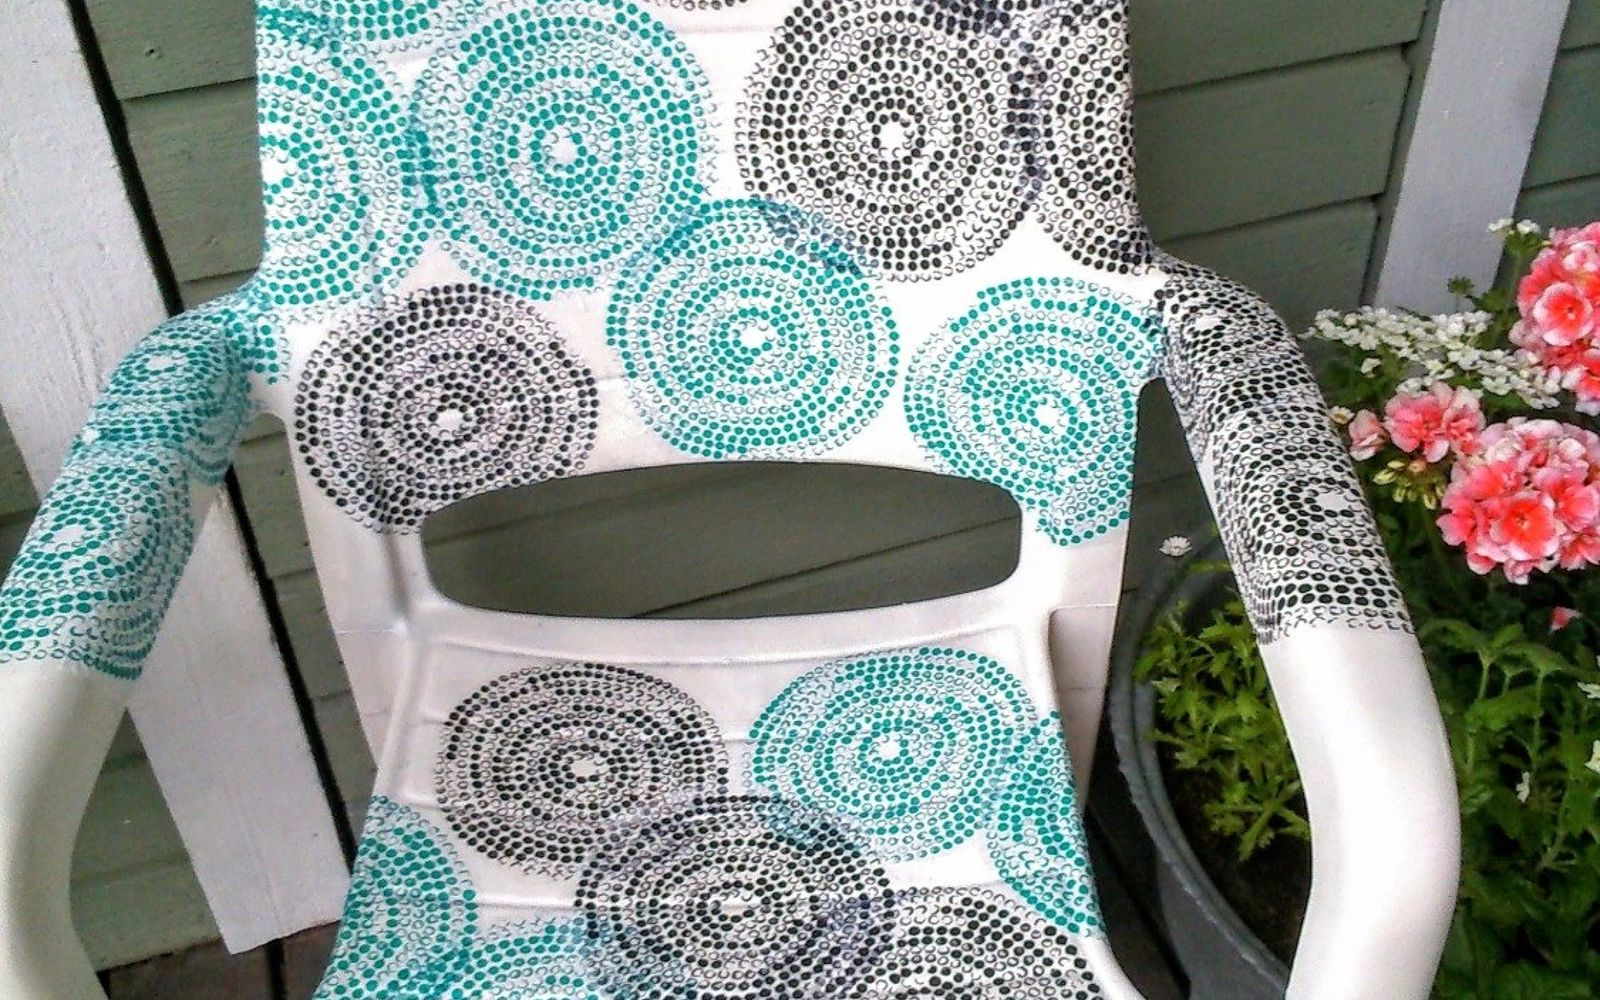 s 12 pool chair ideas we never would have thought of, Coat The Chair In Pretty Napkins